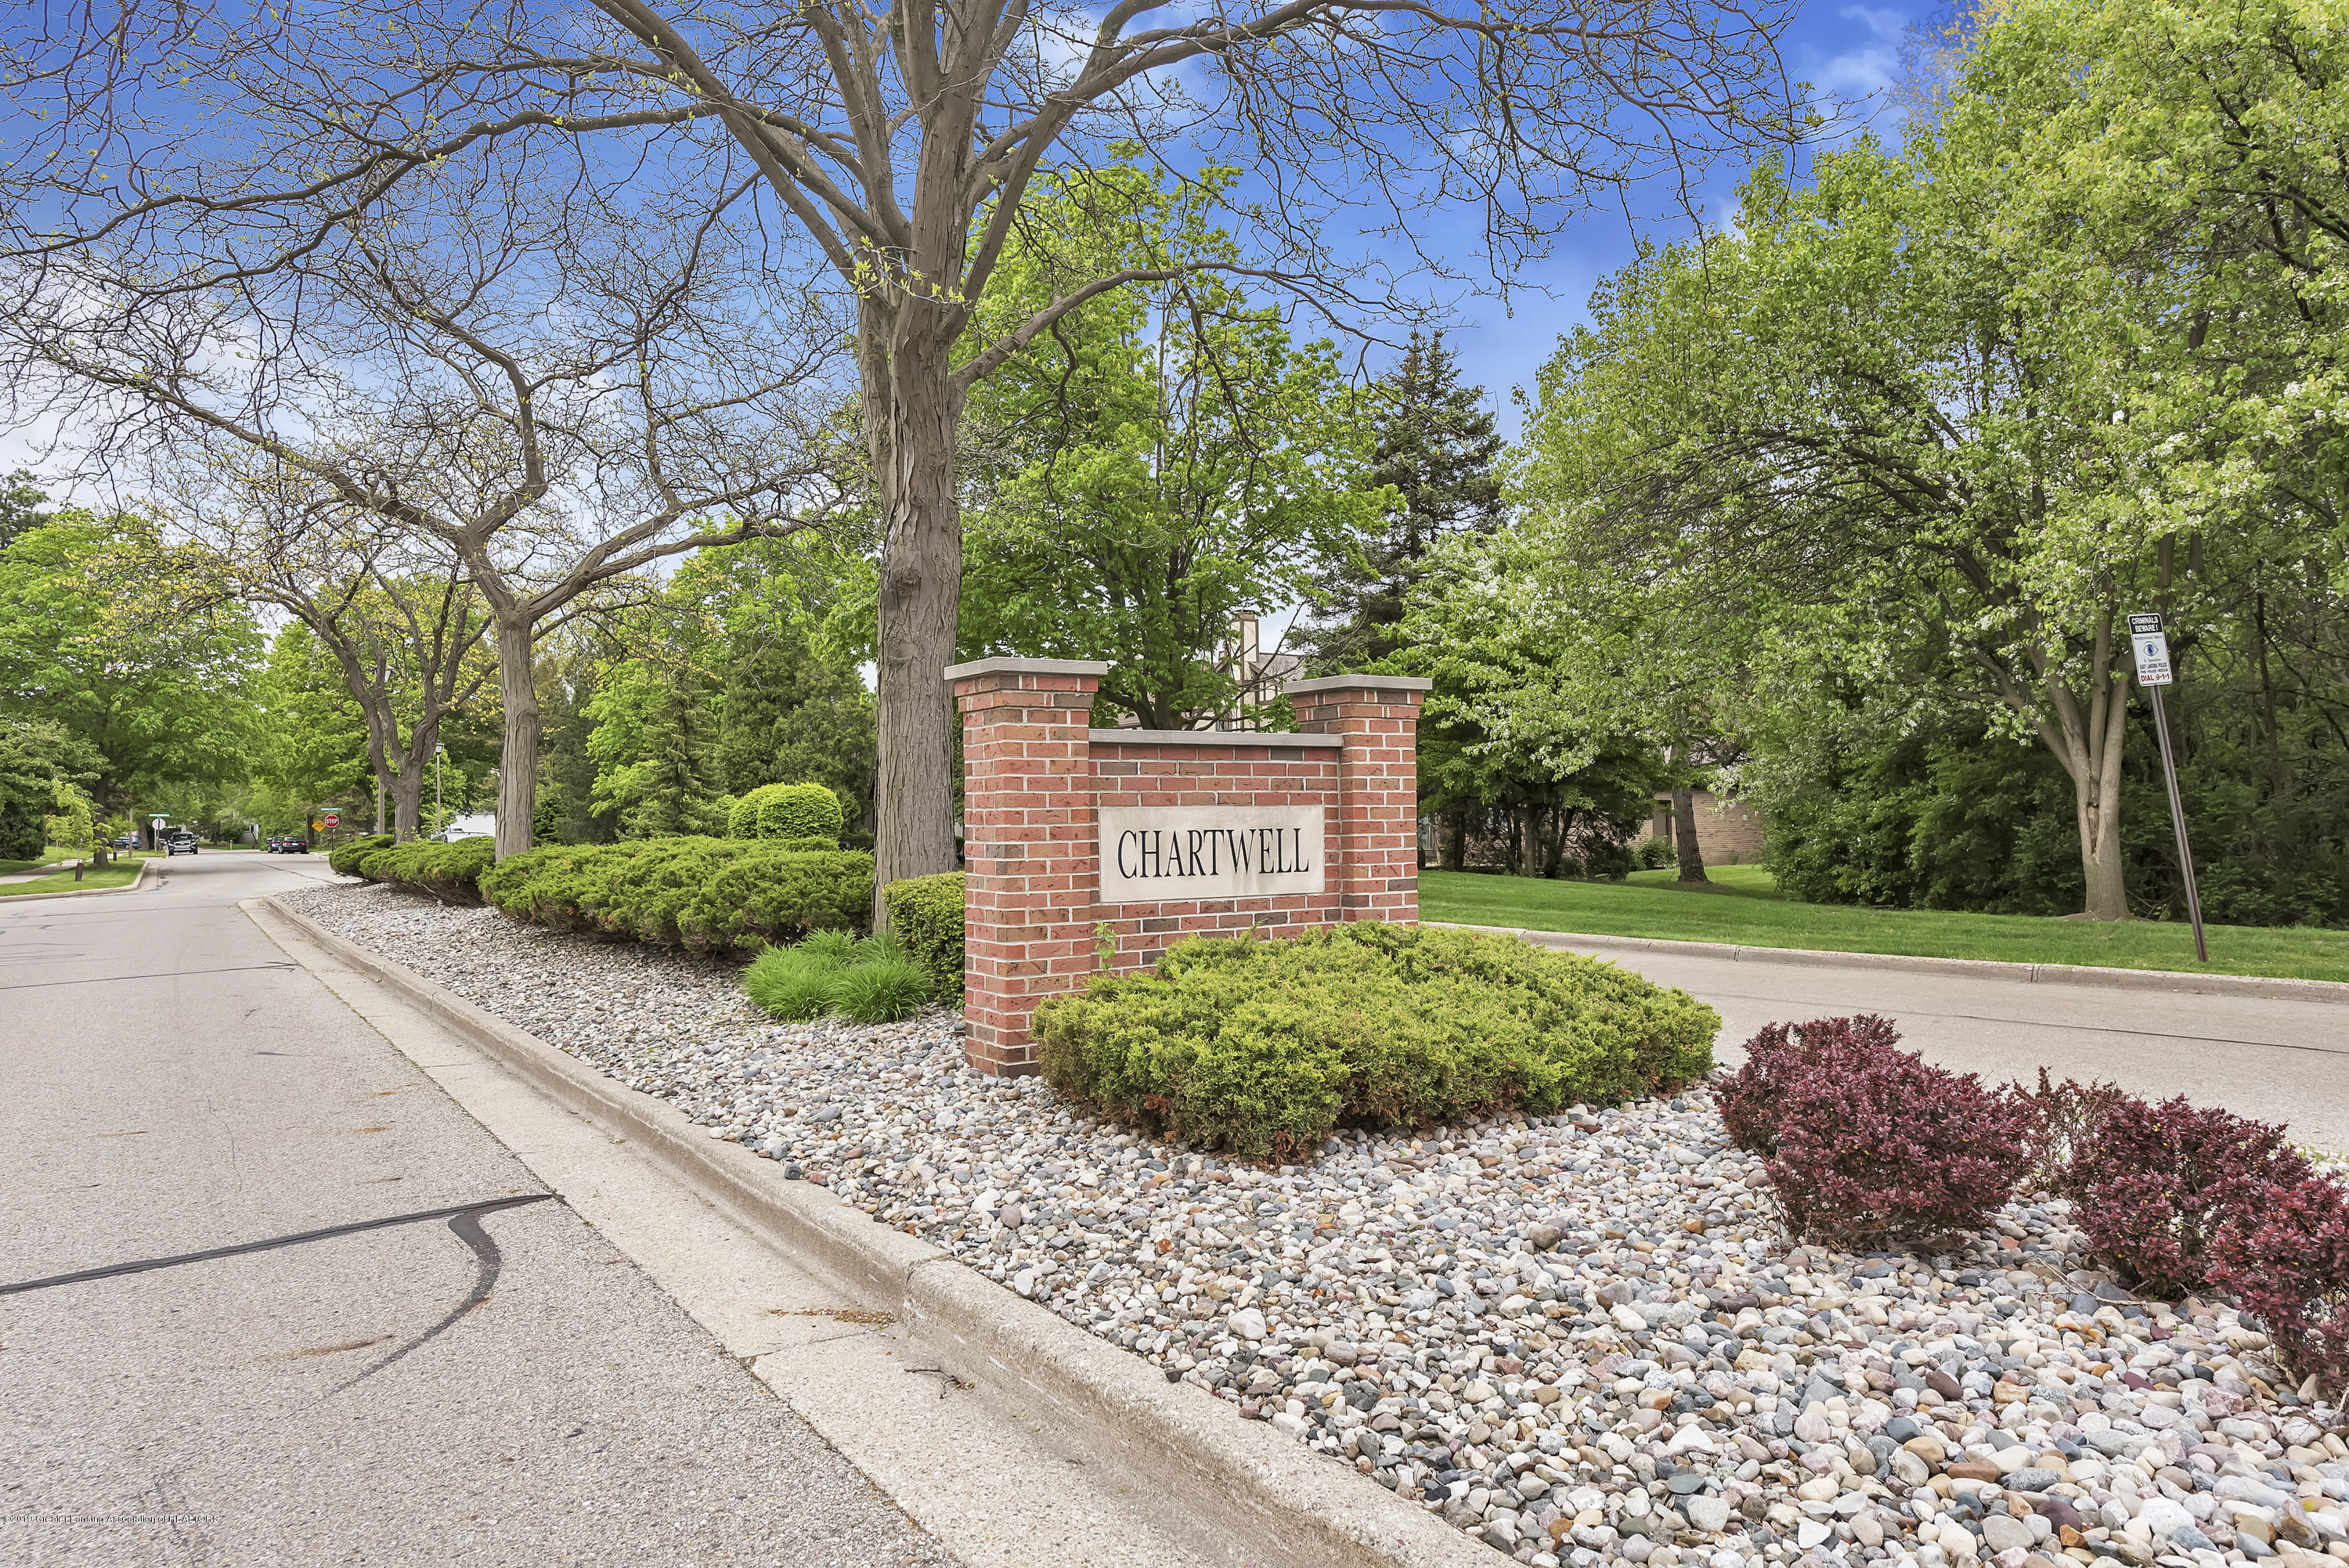 1336 Chartwell Dual Carriage Way - 1336-Chartwell-Duel-Carriage-Way-South-E - 2